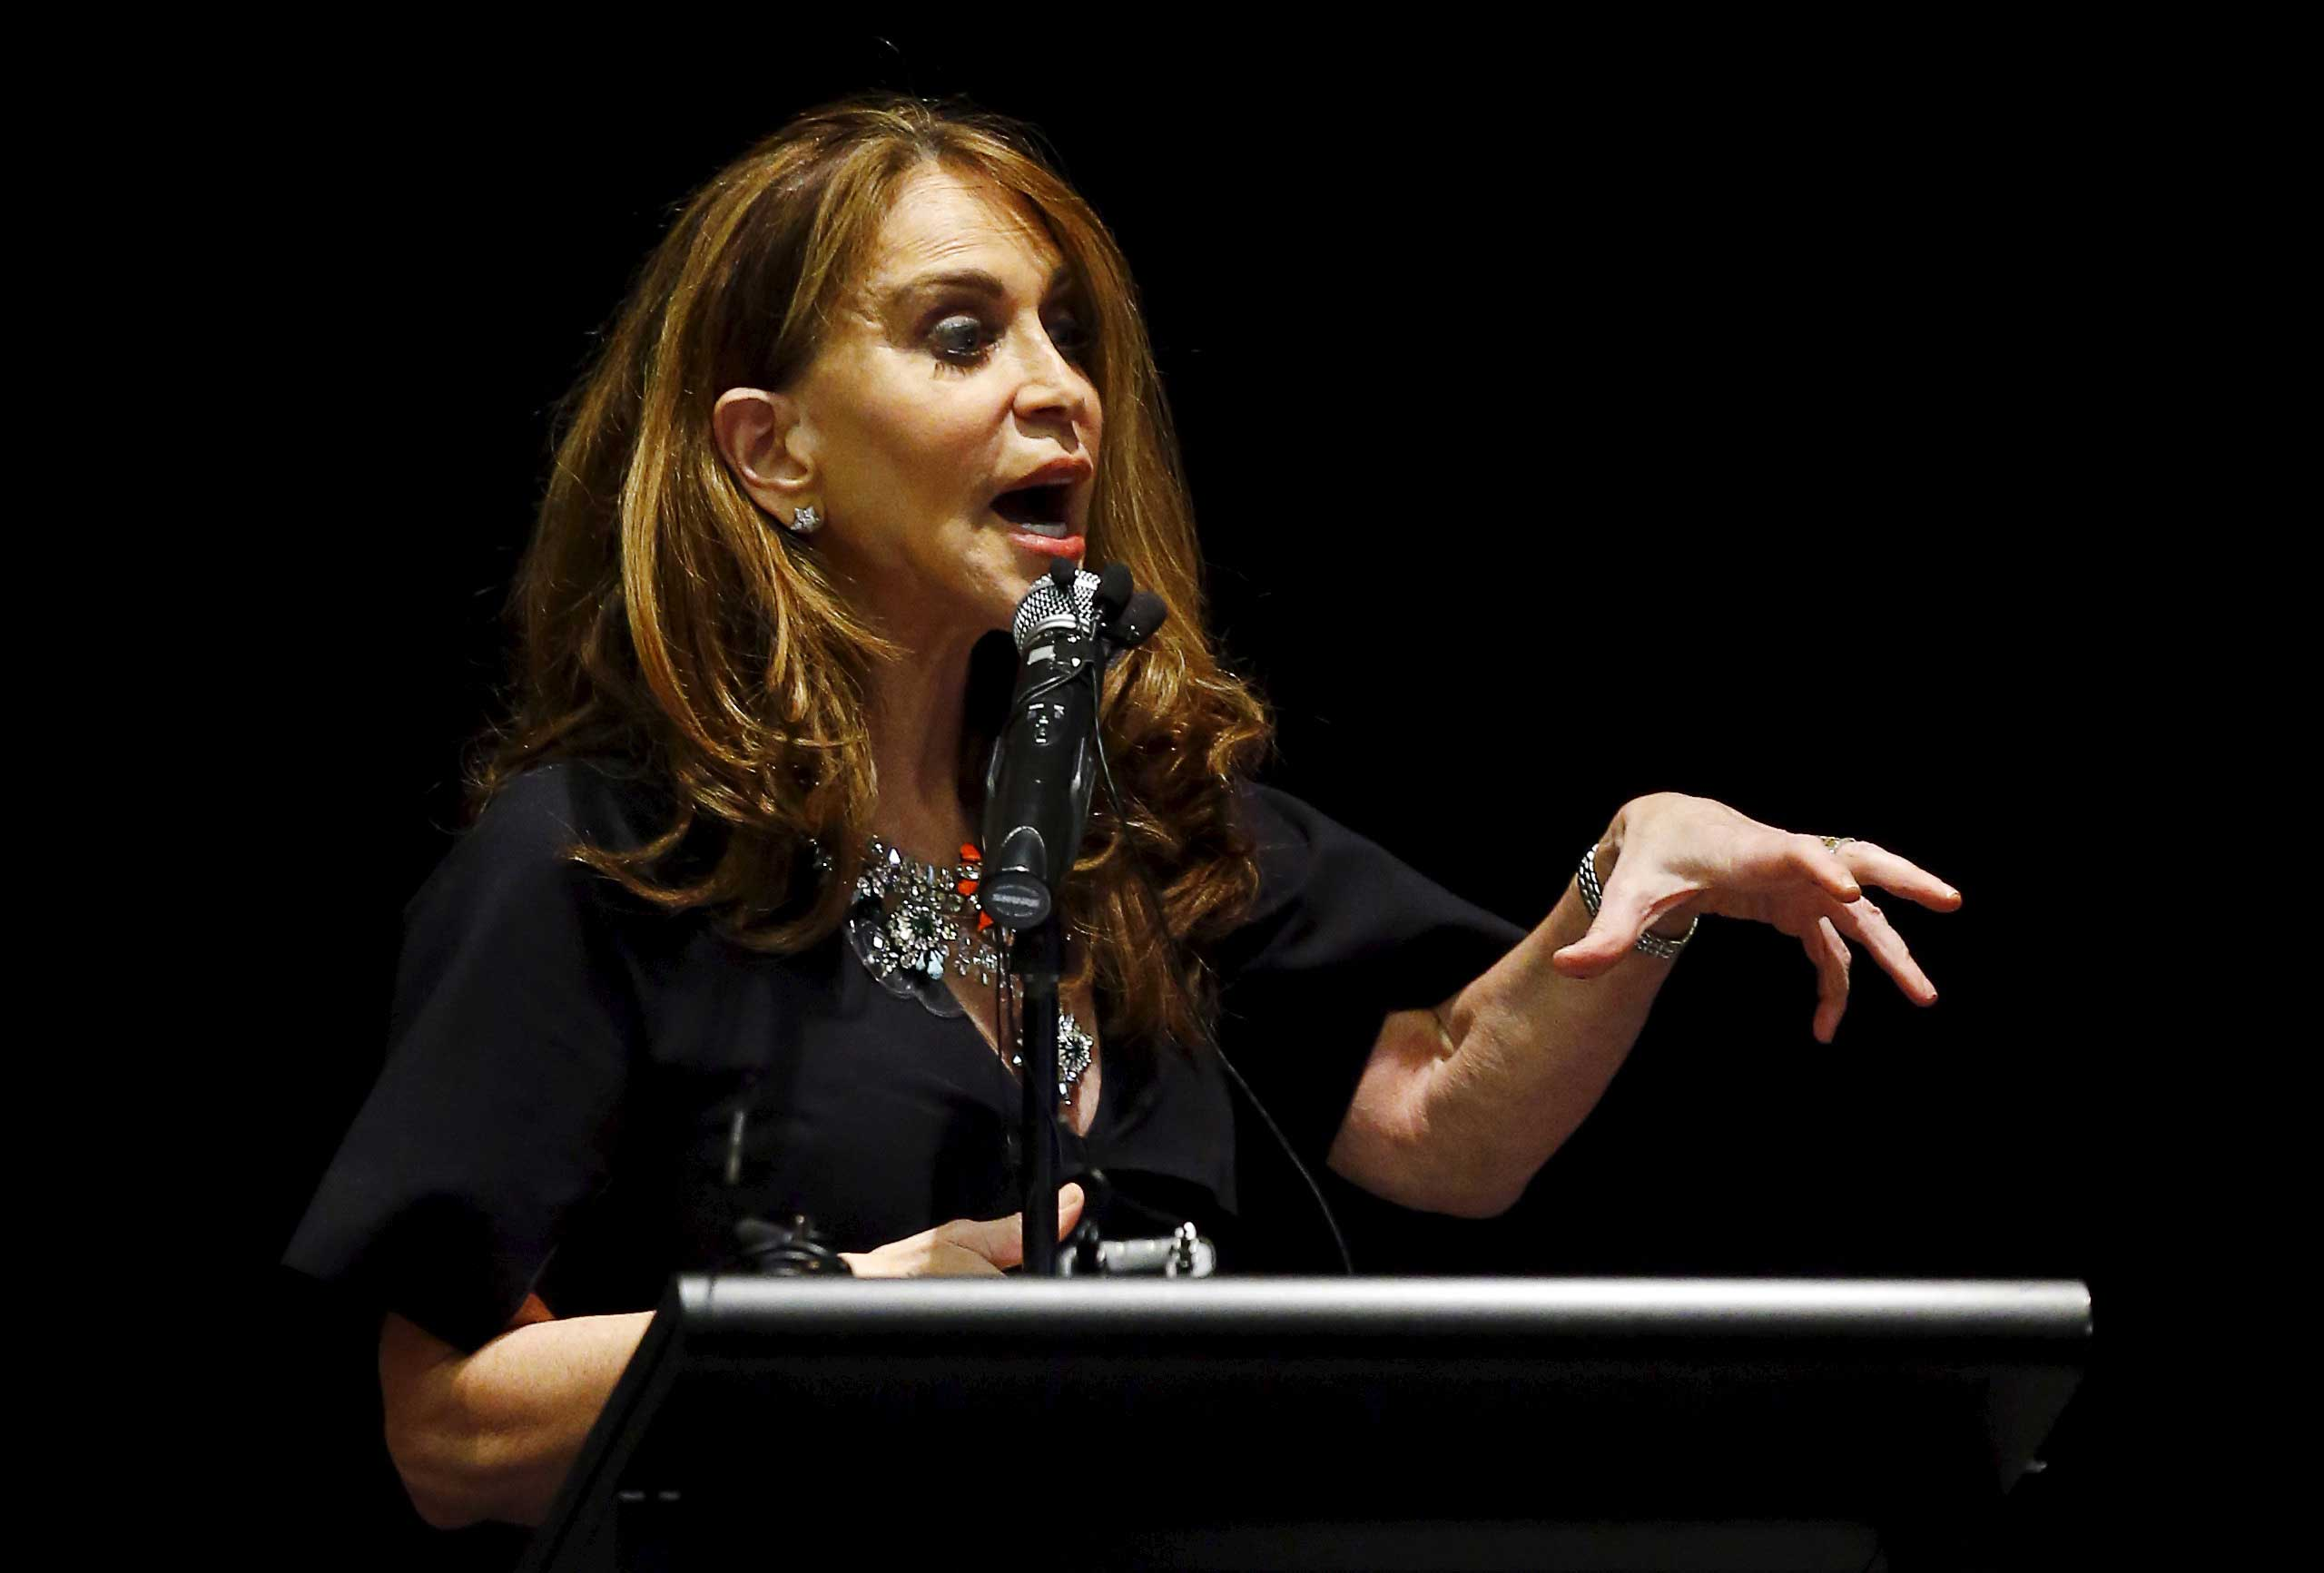 Political blogger Pamela Geller, American Freedom Defense Initiative's Houston-based founder, speaks at the Muhammad Art Exhibit and Contest, which is sponsored by the American Freedom Defense Initiative, in Garland, Texas May 3, 2015.